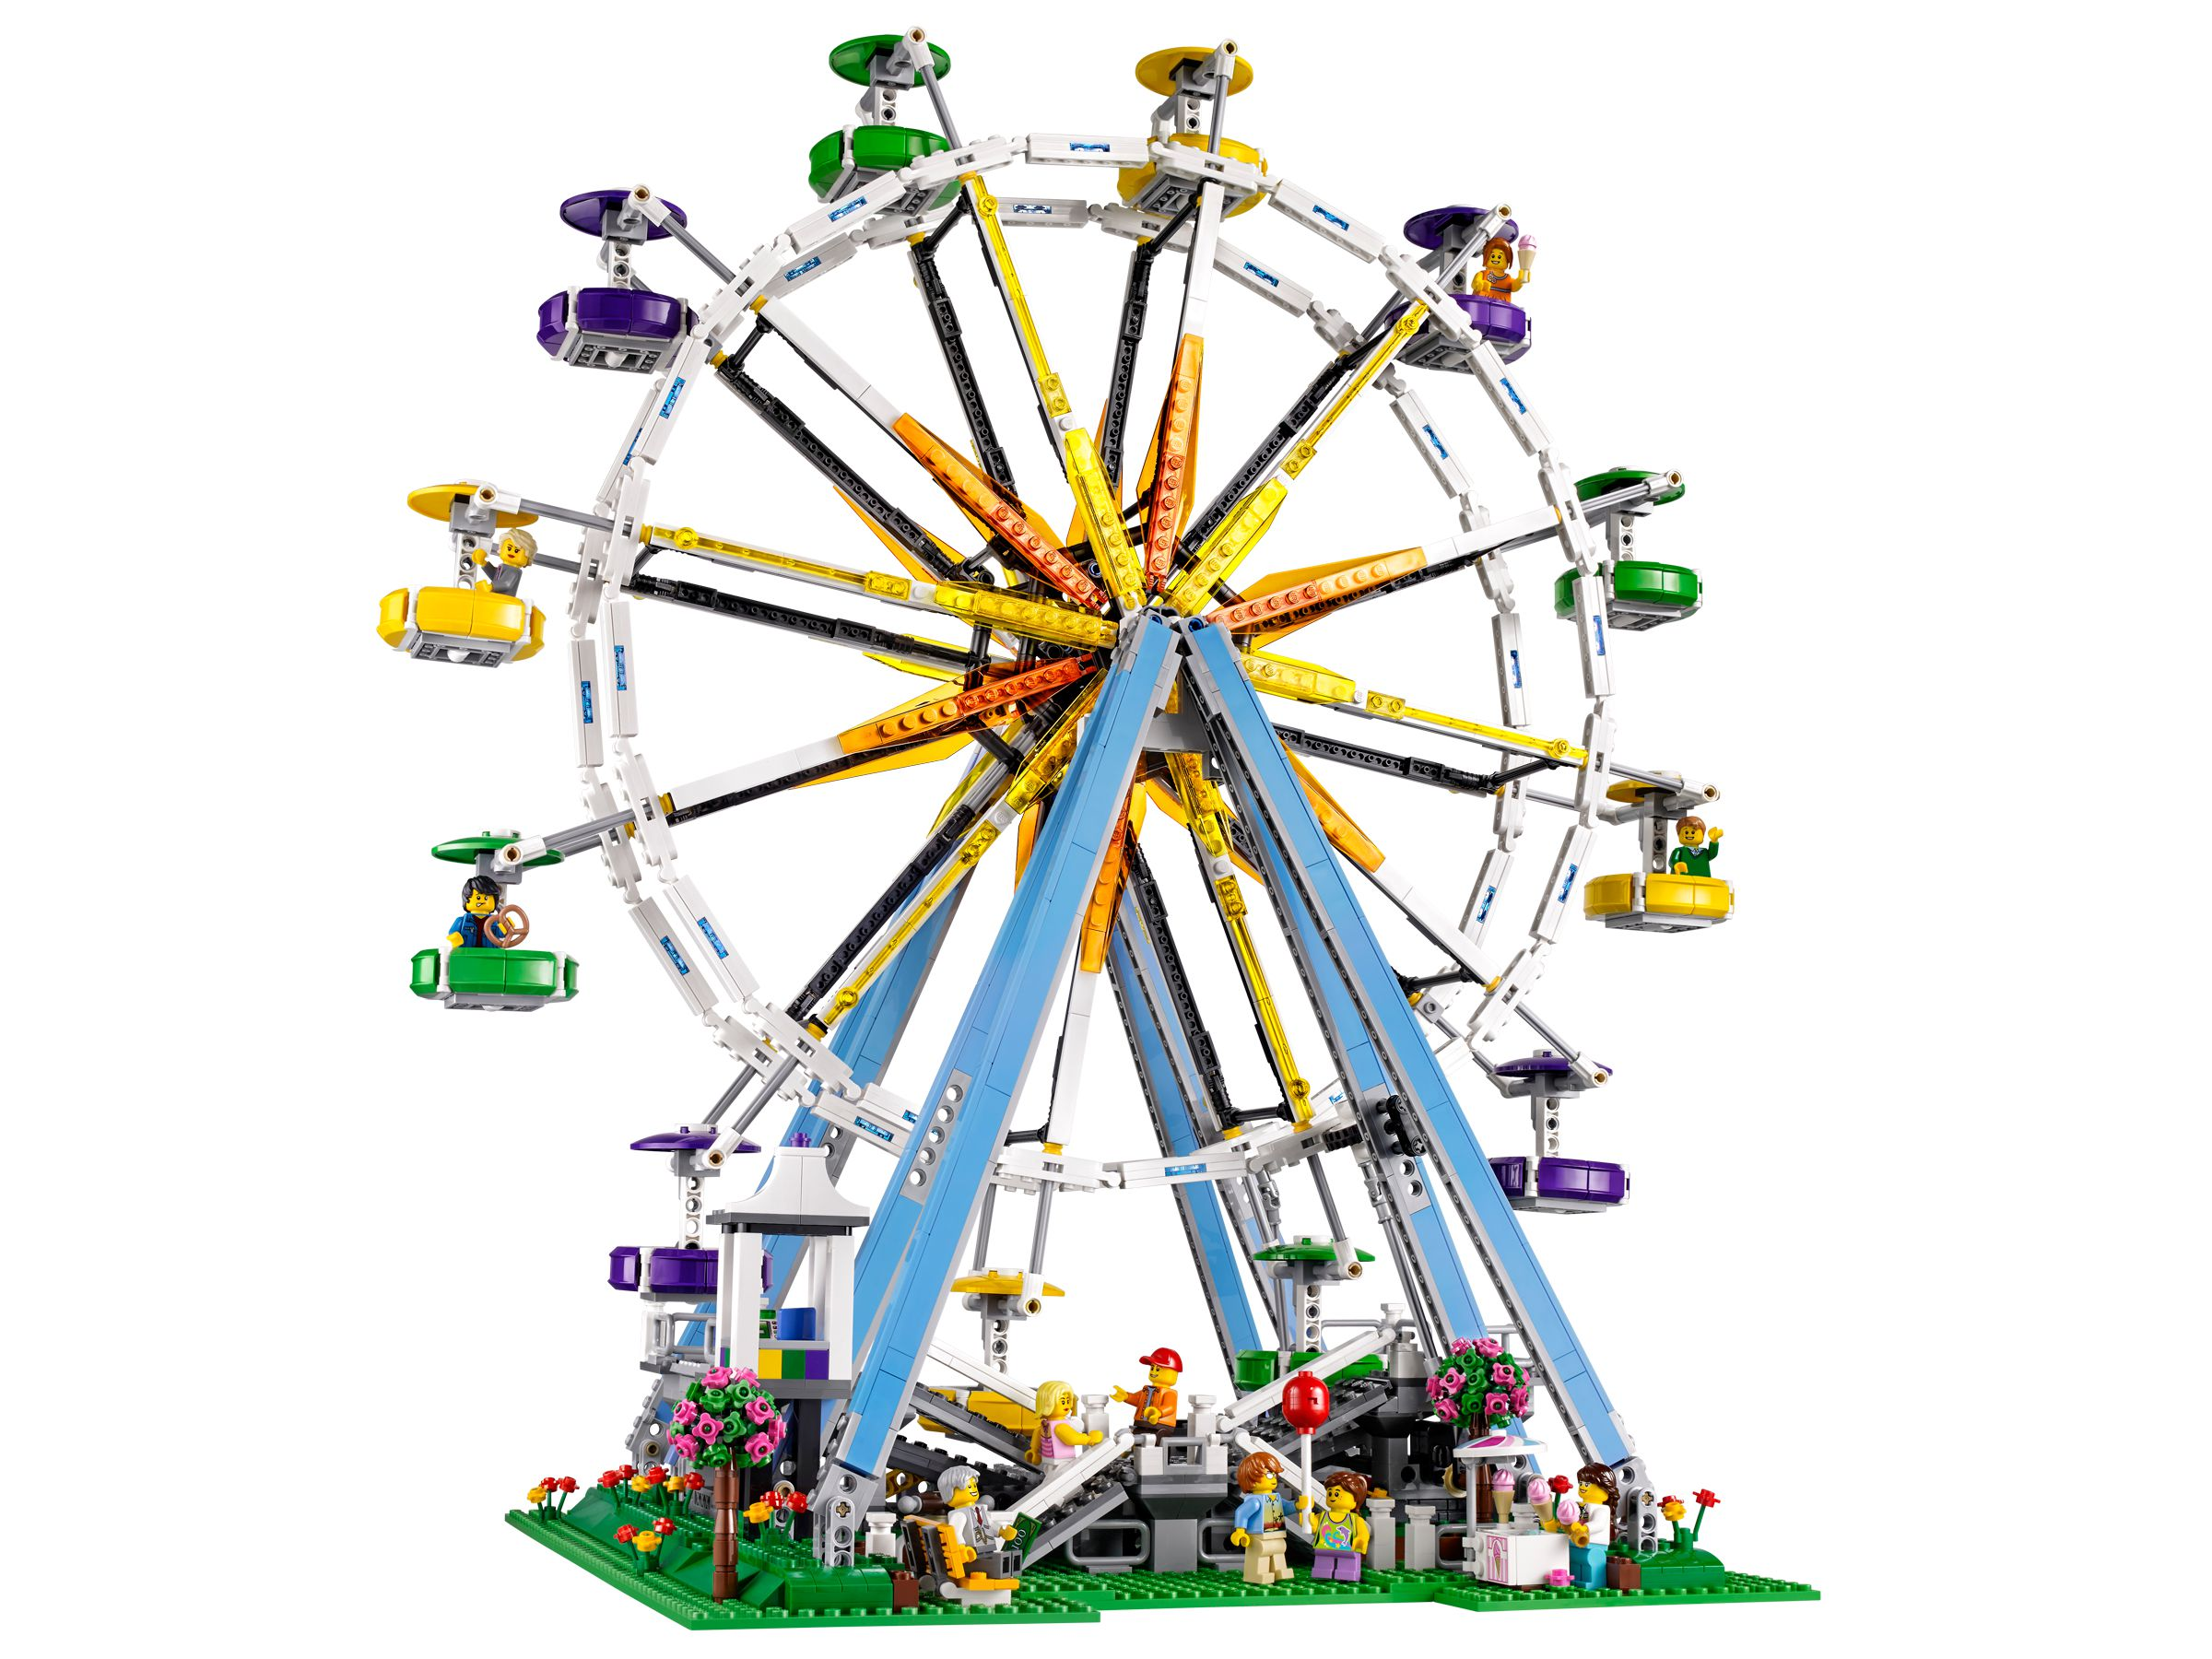 LEGO Advanced Models 10247 Riesenrad (Ferris Wheel) LEGO_10247_alt2.jpg